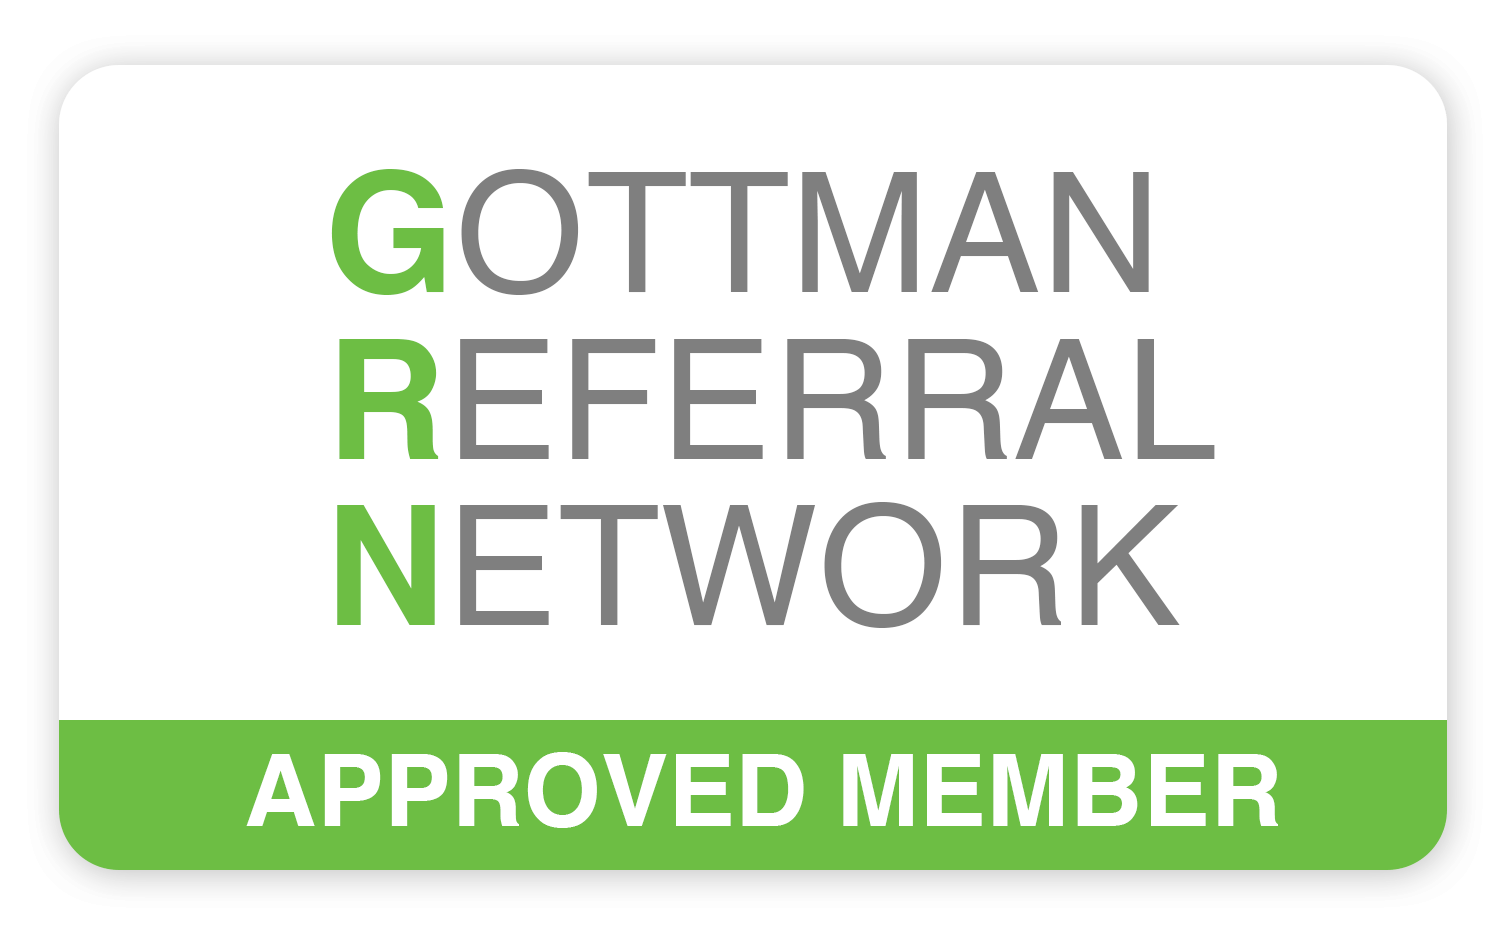 Mark Trahan's profile on the Gottman Referral Network